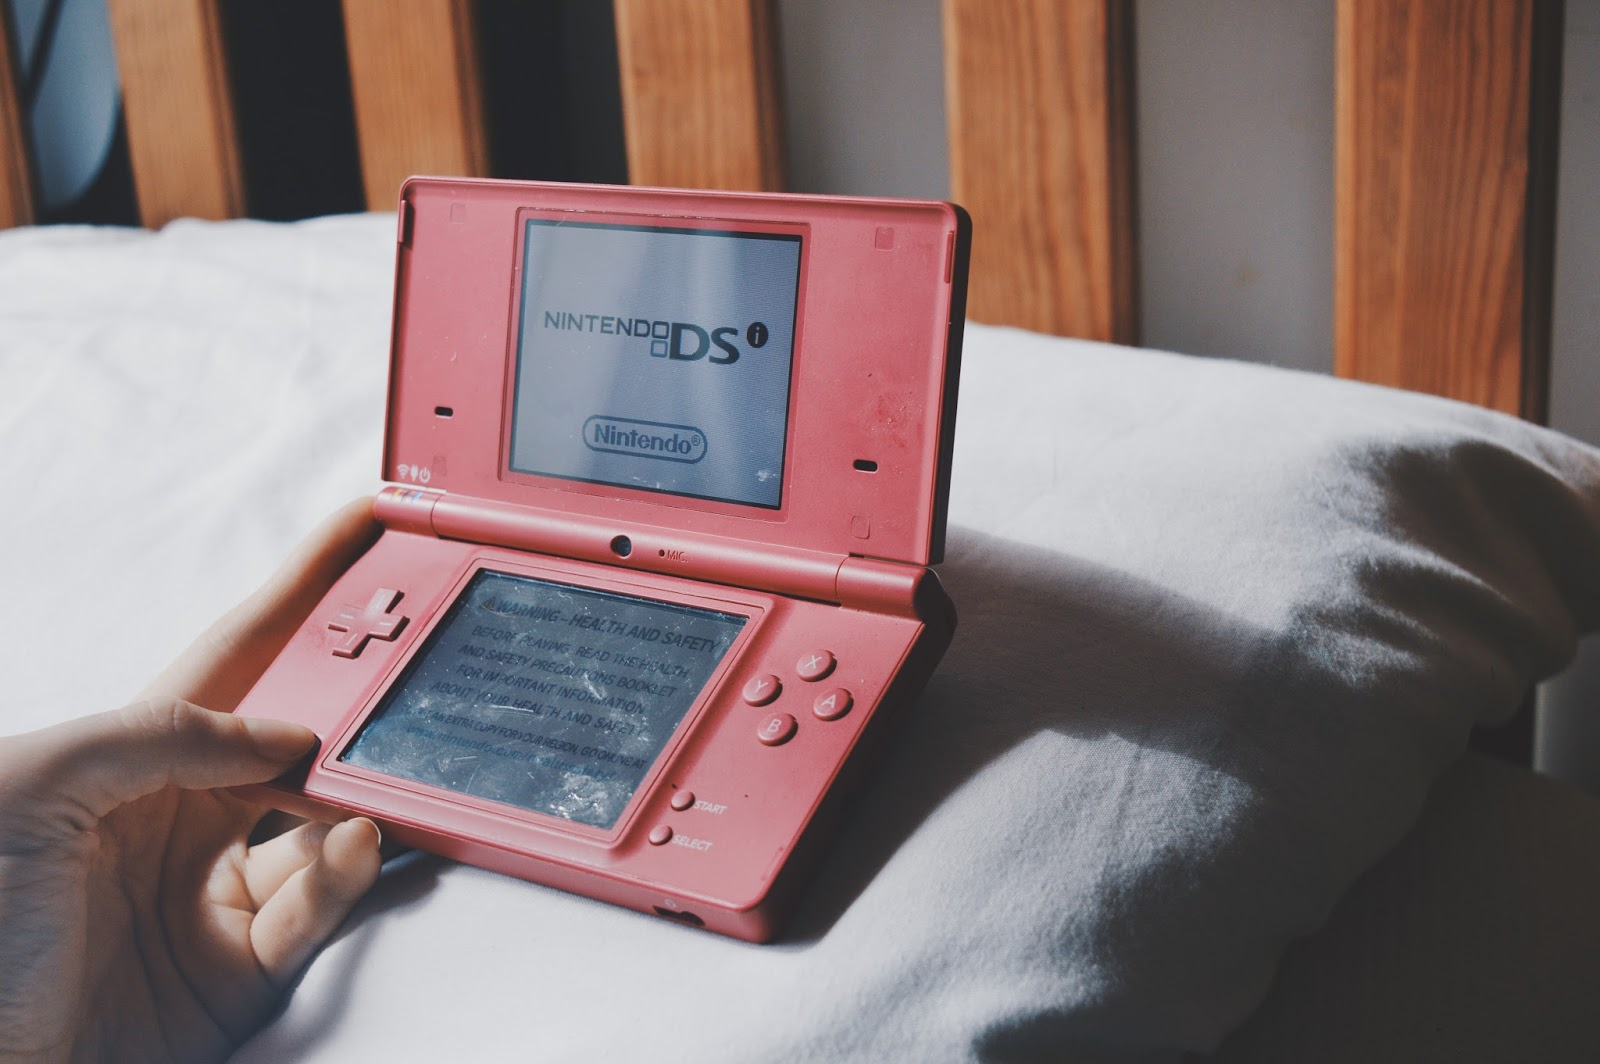 nintendo DSi pink home screen